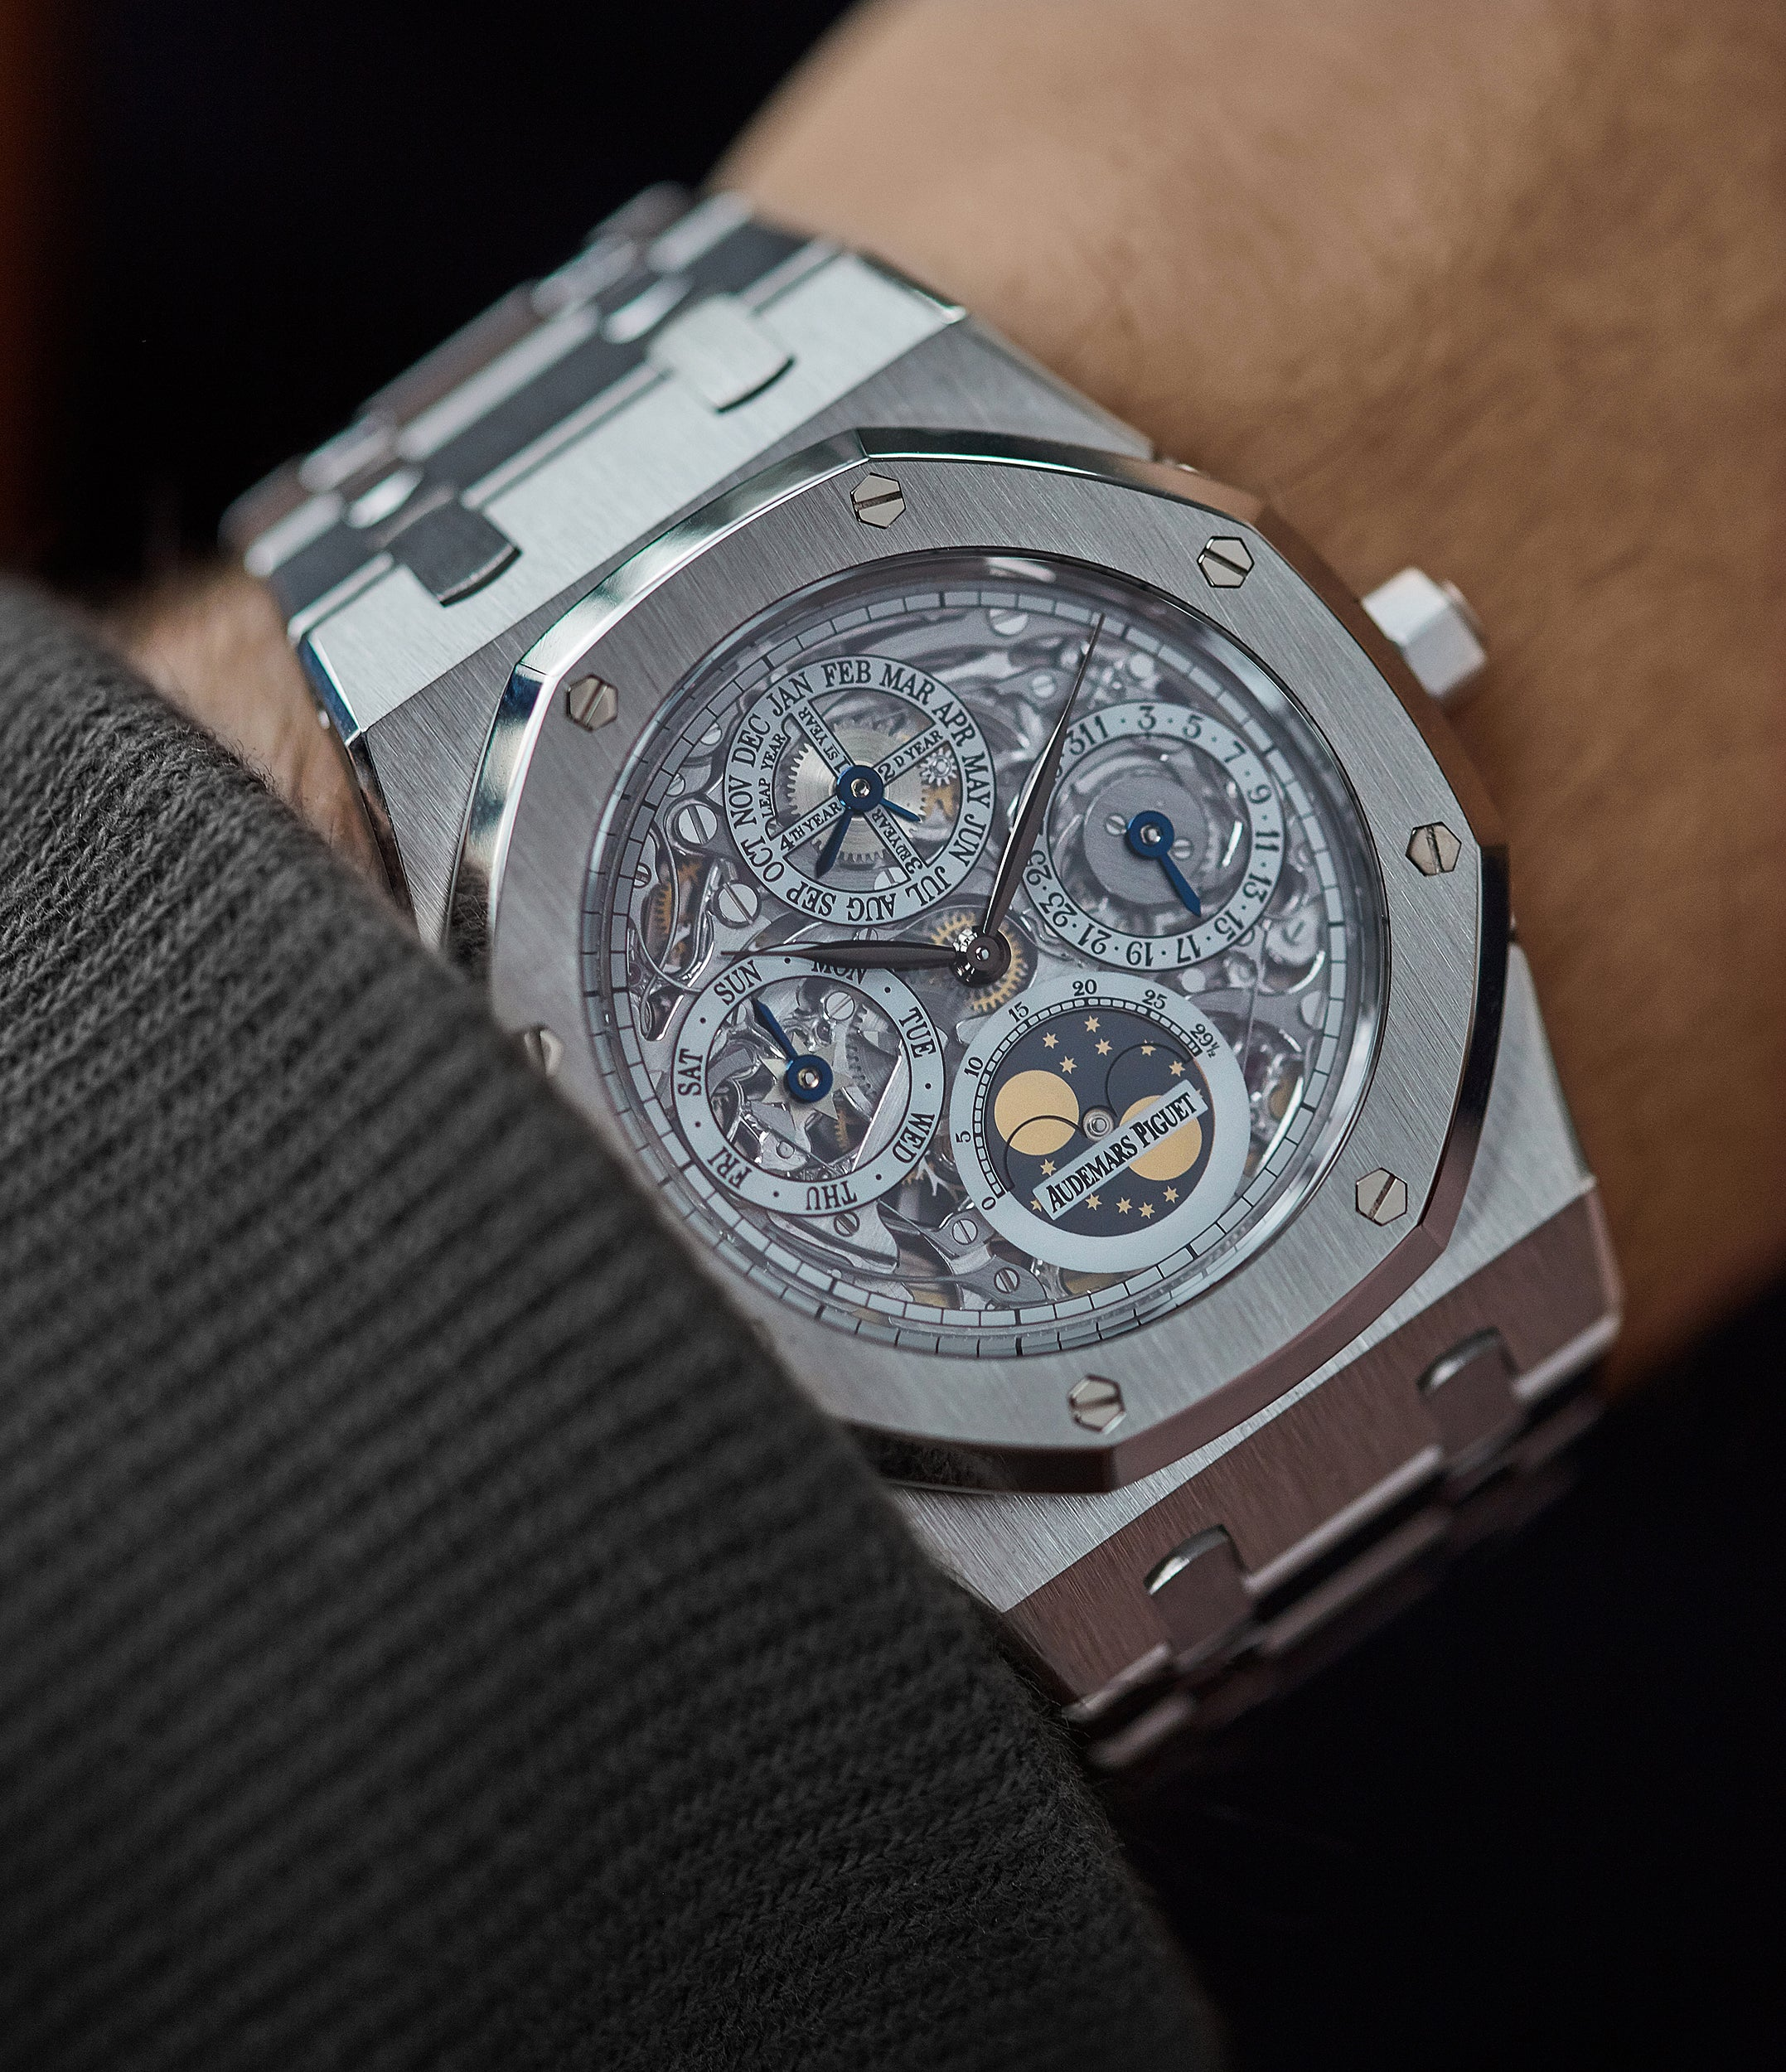 find Audemars Piguet Royal Oak 25829PT perpetual calendar skeleton dial platinum full set pre-owned watch for sale online at A Collected Man London UK specialist of rare watches